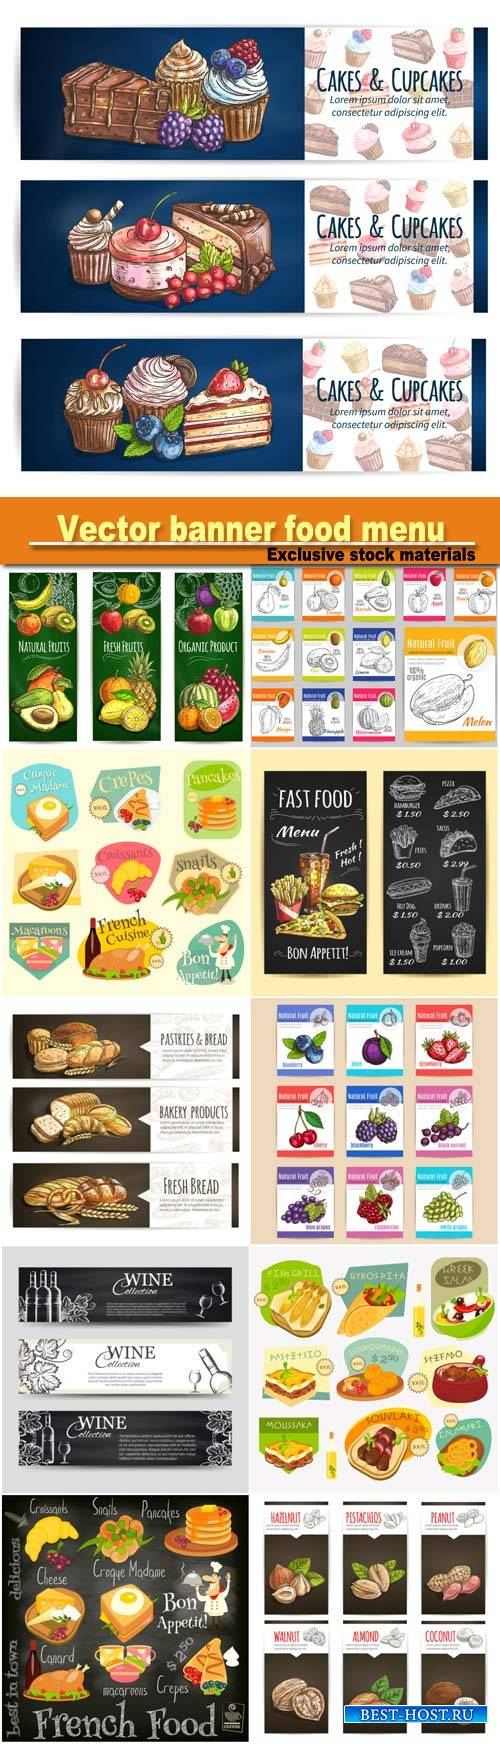 Vector banner food menu, cafe leaflet, pastry shop signboard